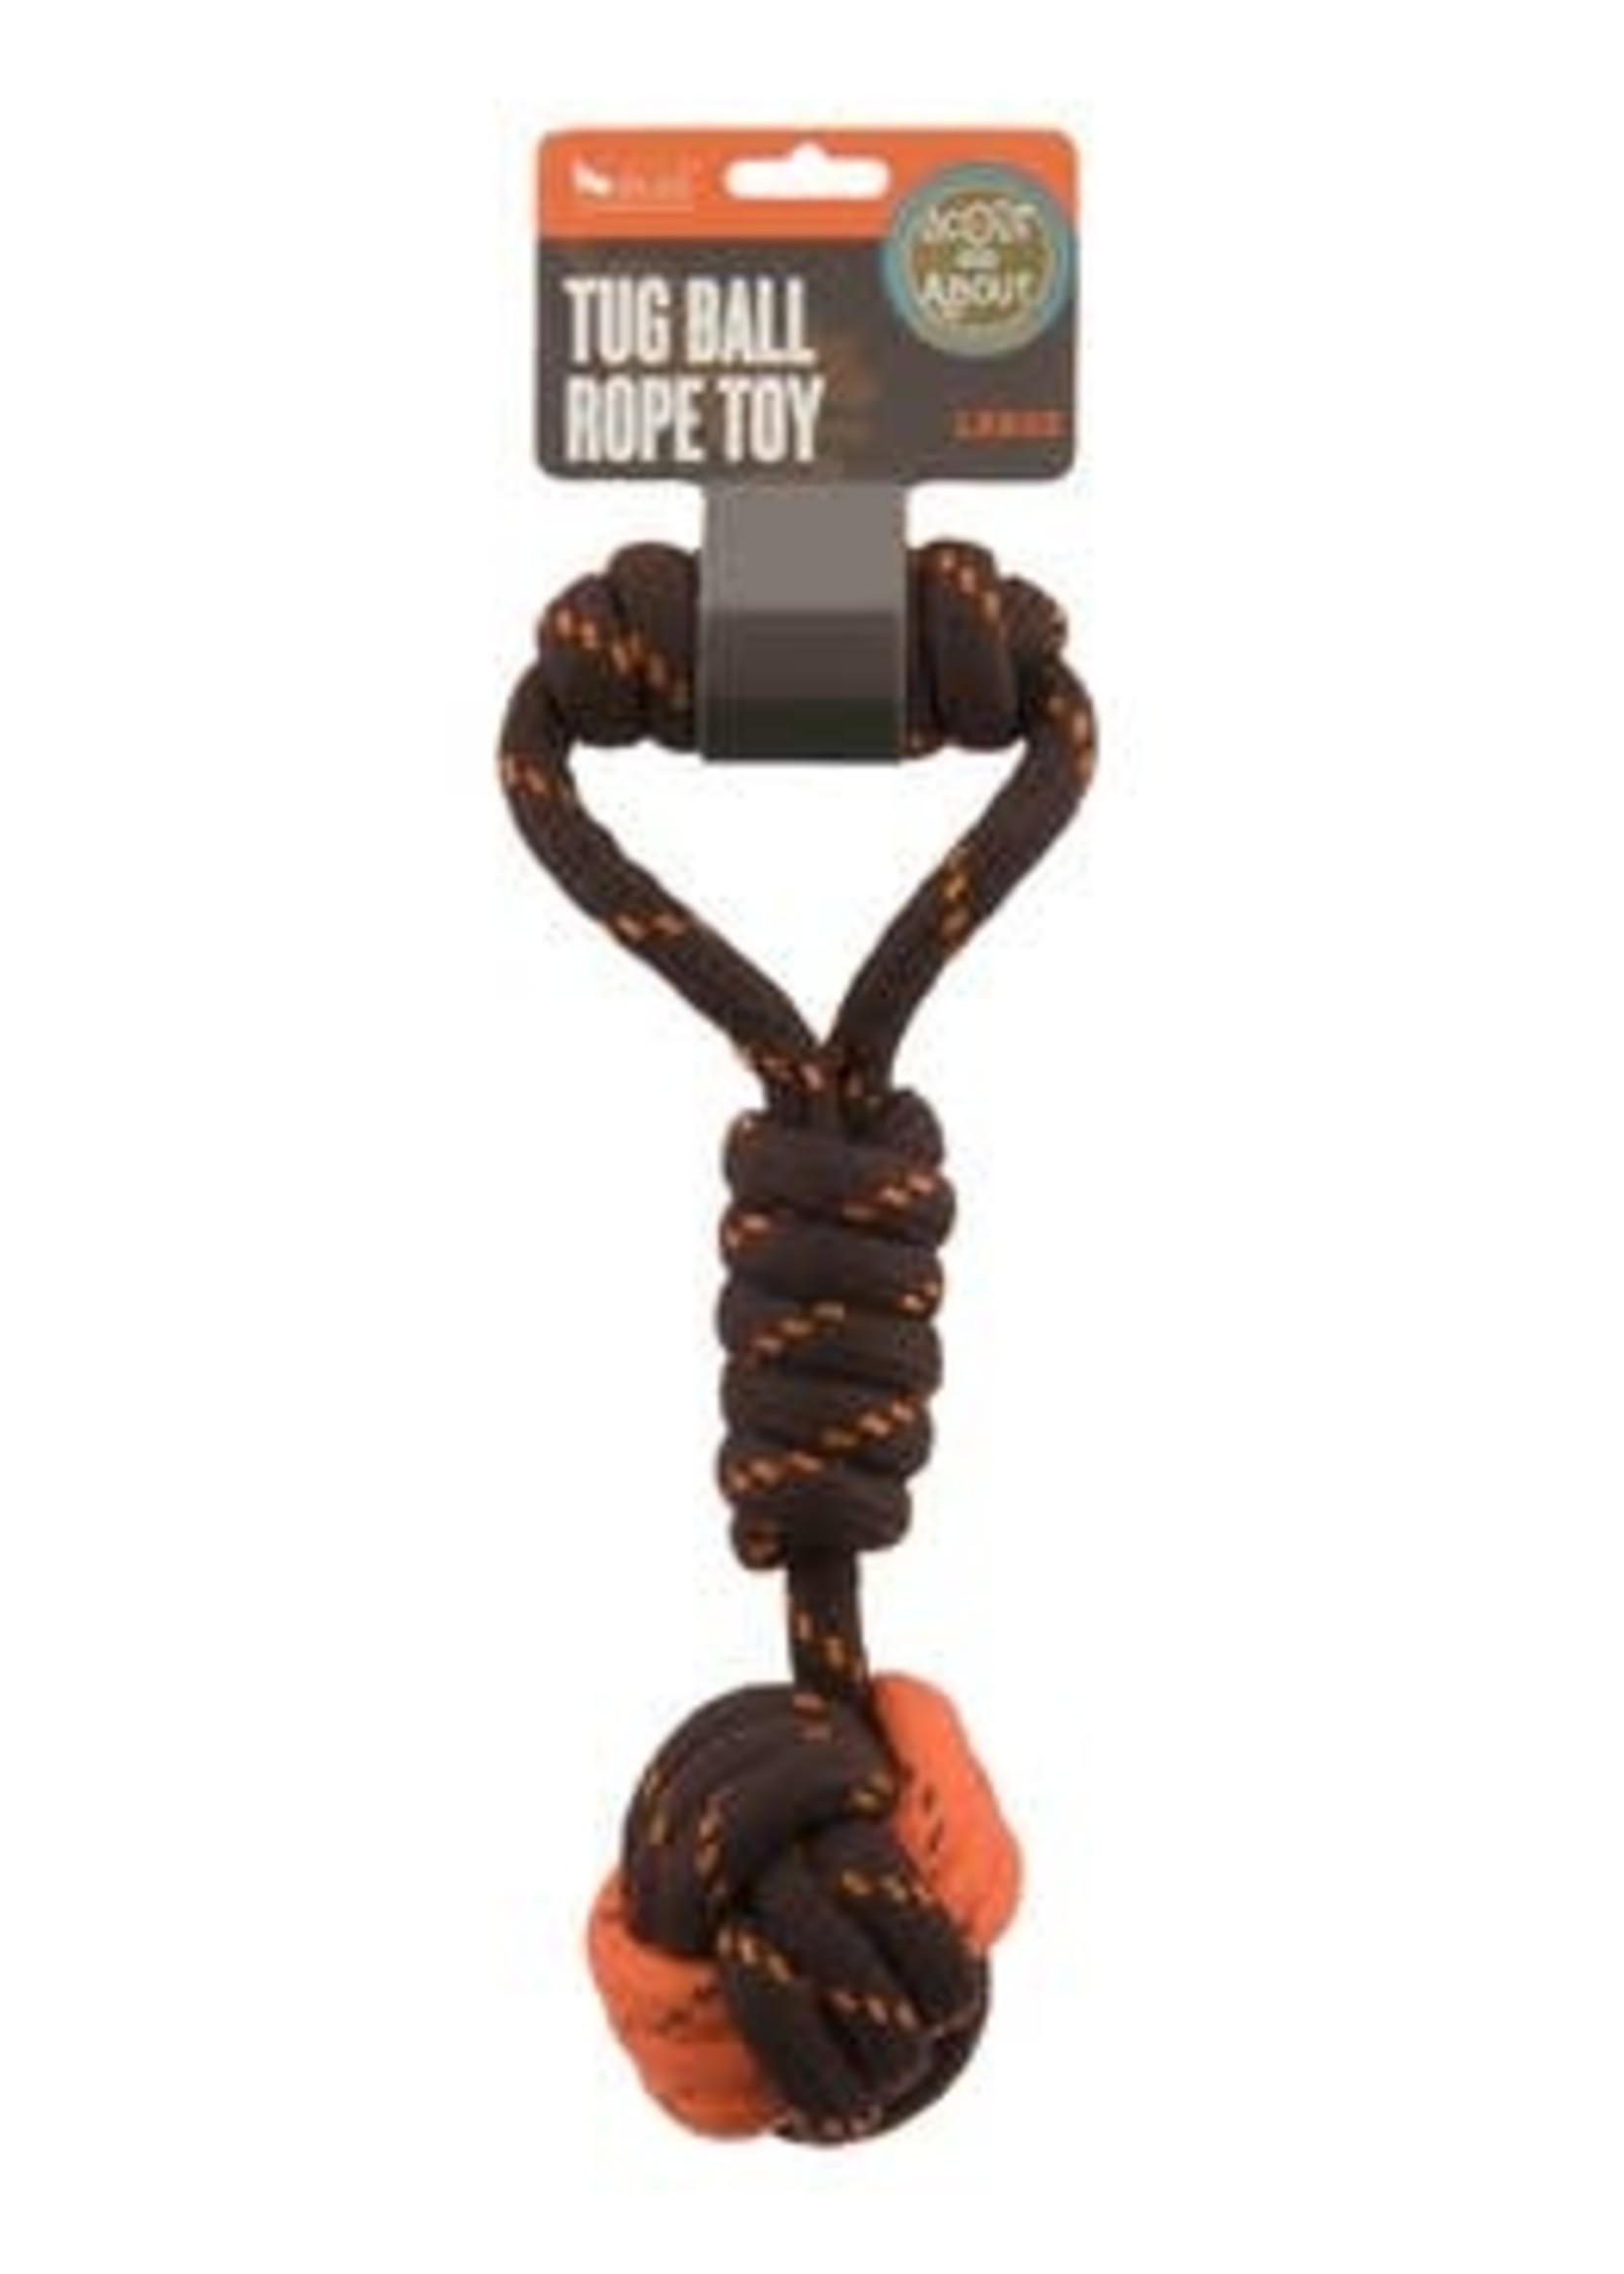 PLAY PLAY TUG A BALL ROPE LARGE DOG TOY